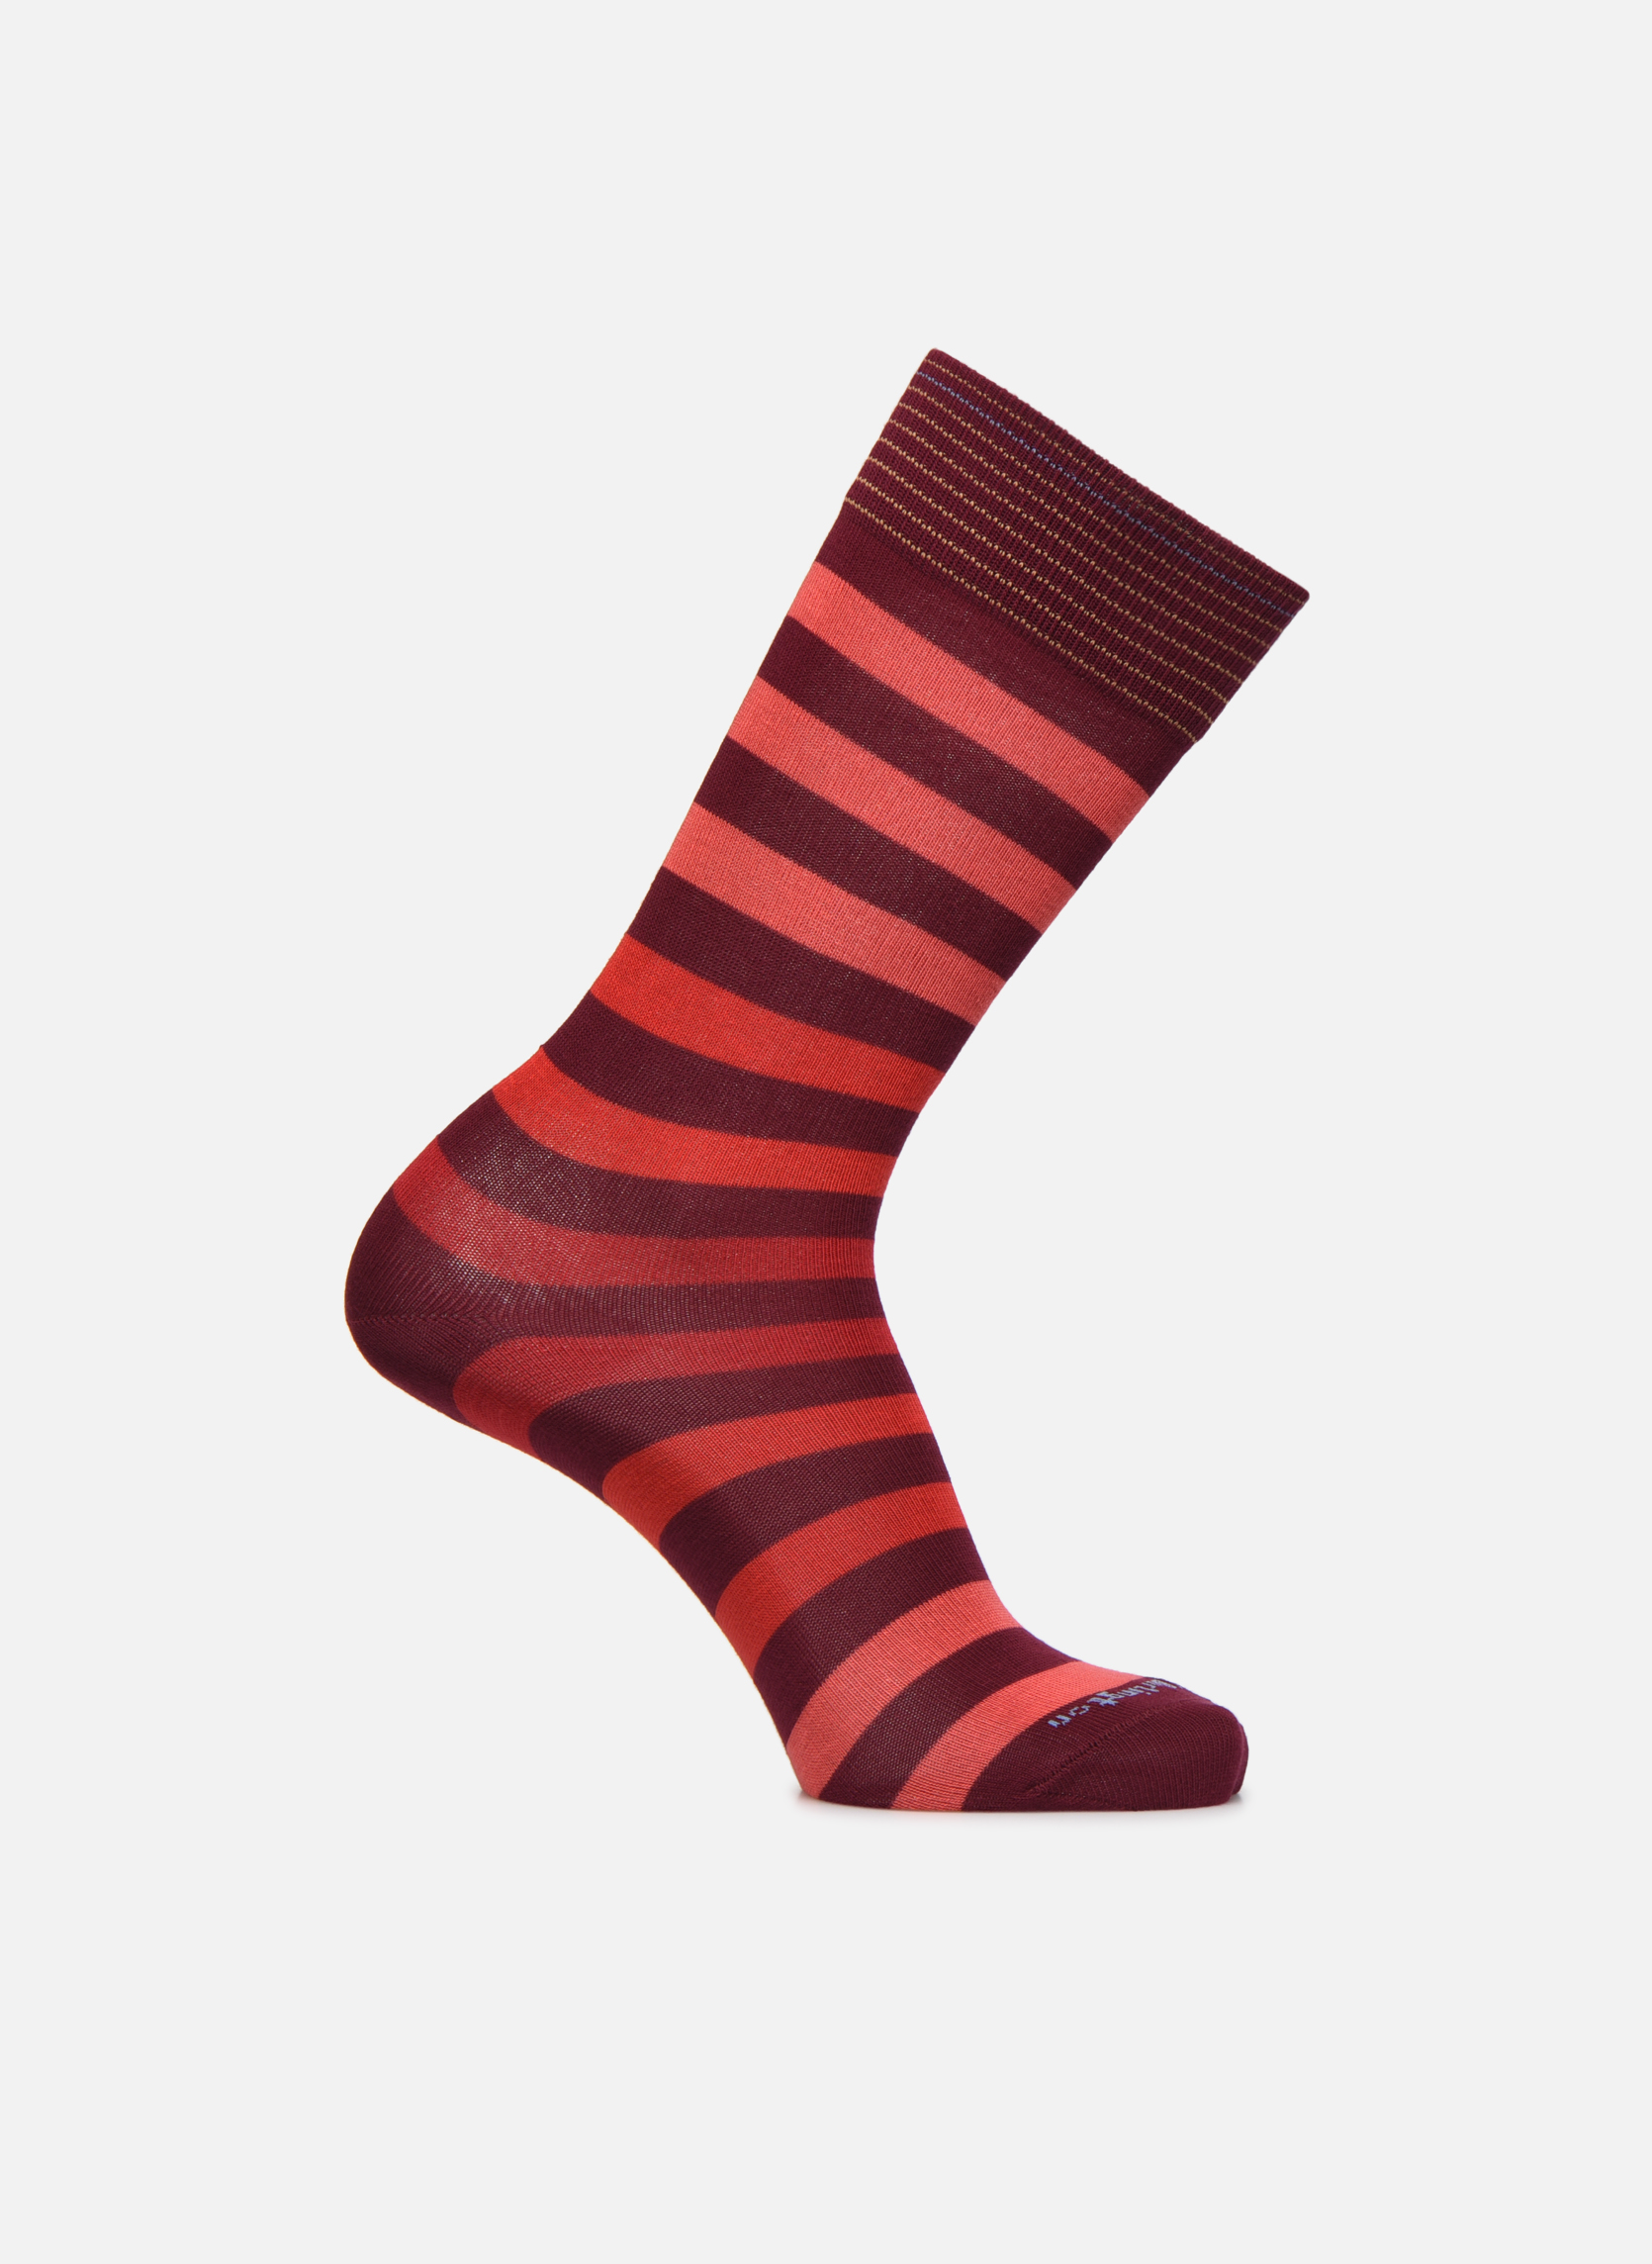 Chaussettes RAYEES 8005 rouge